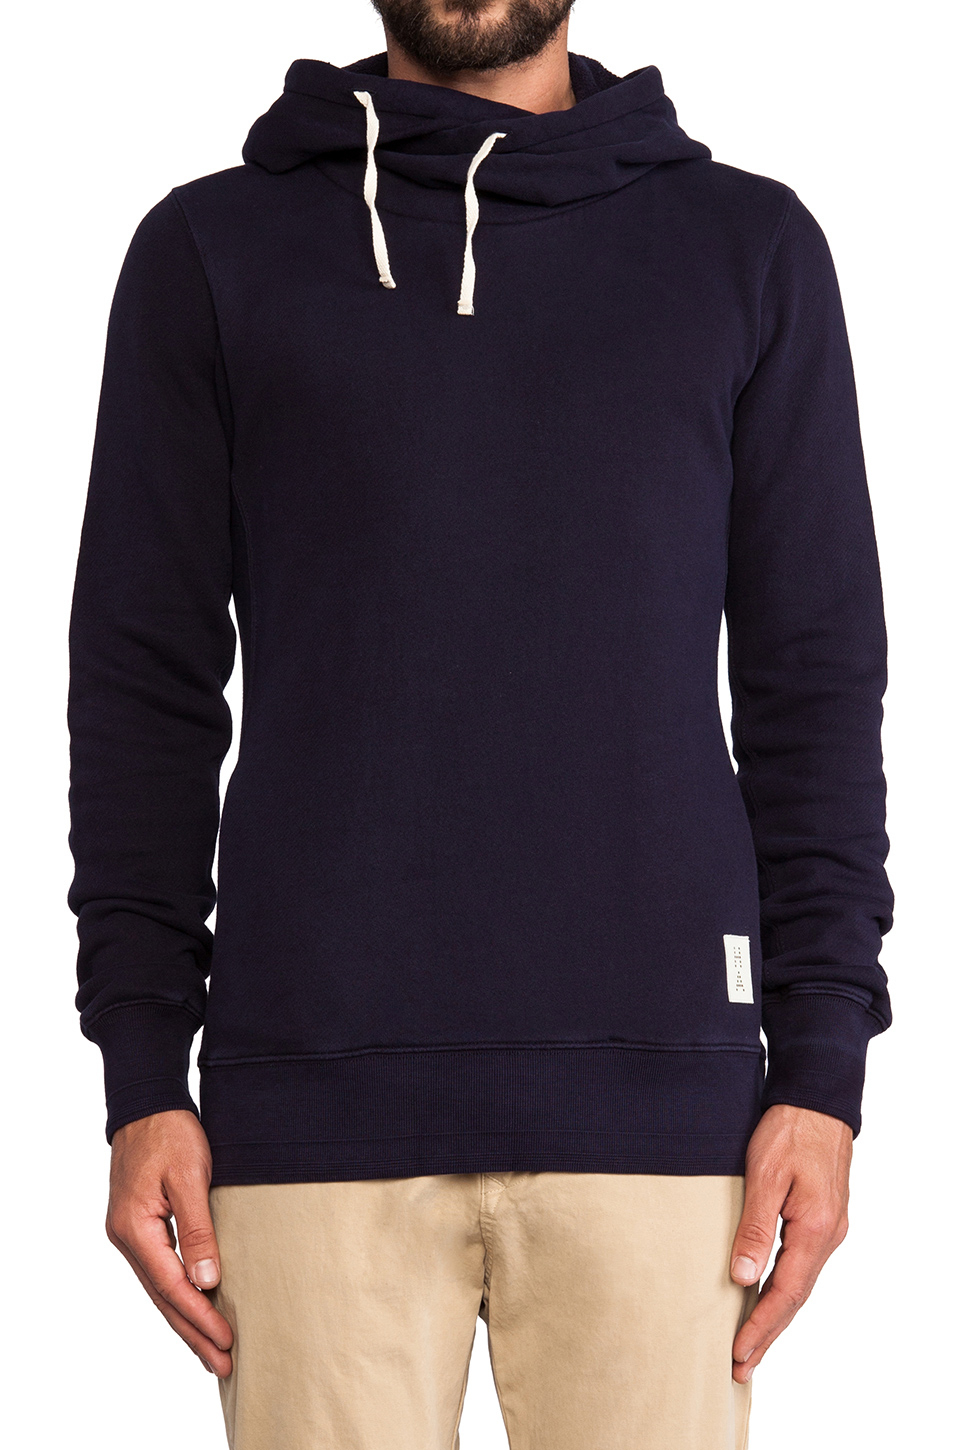 Lyst - Scotch & Soda Home Alone Twisted Hoodie in Blue for Men